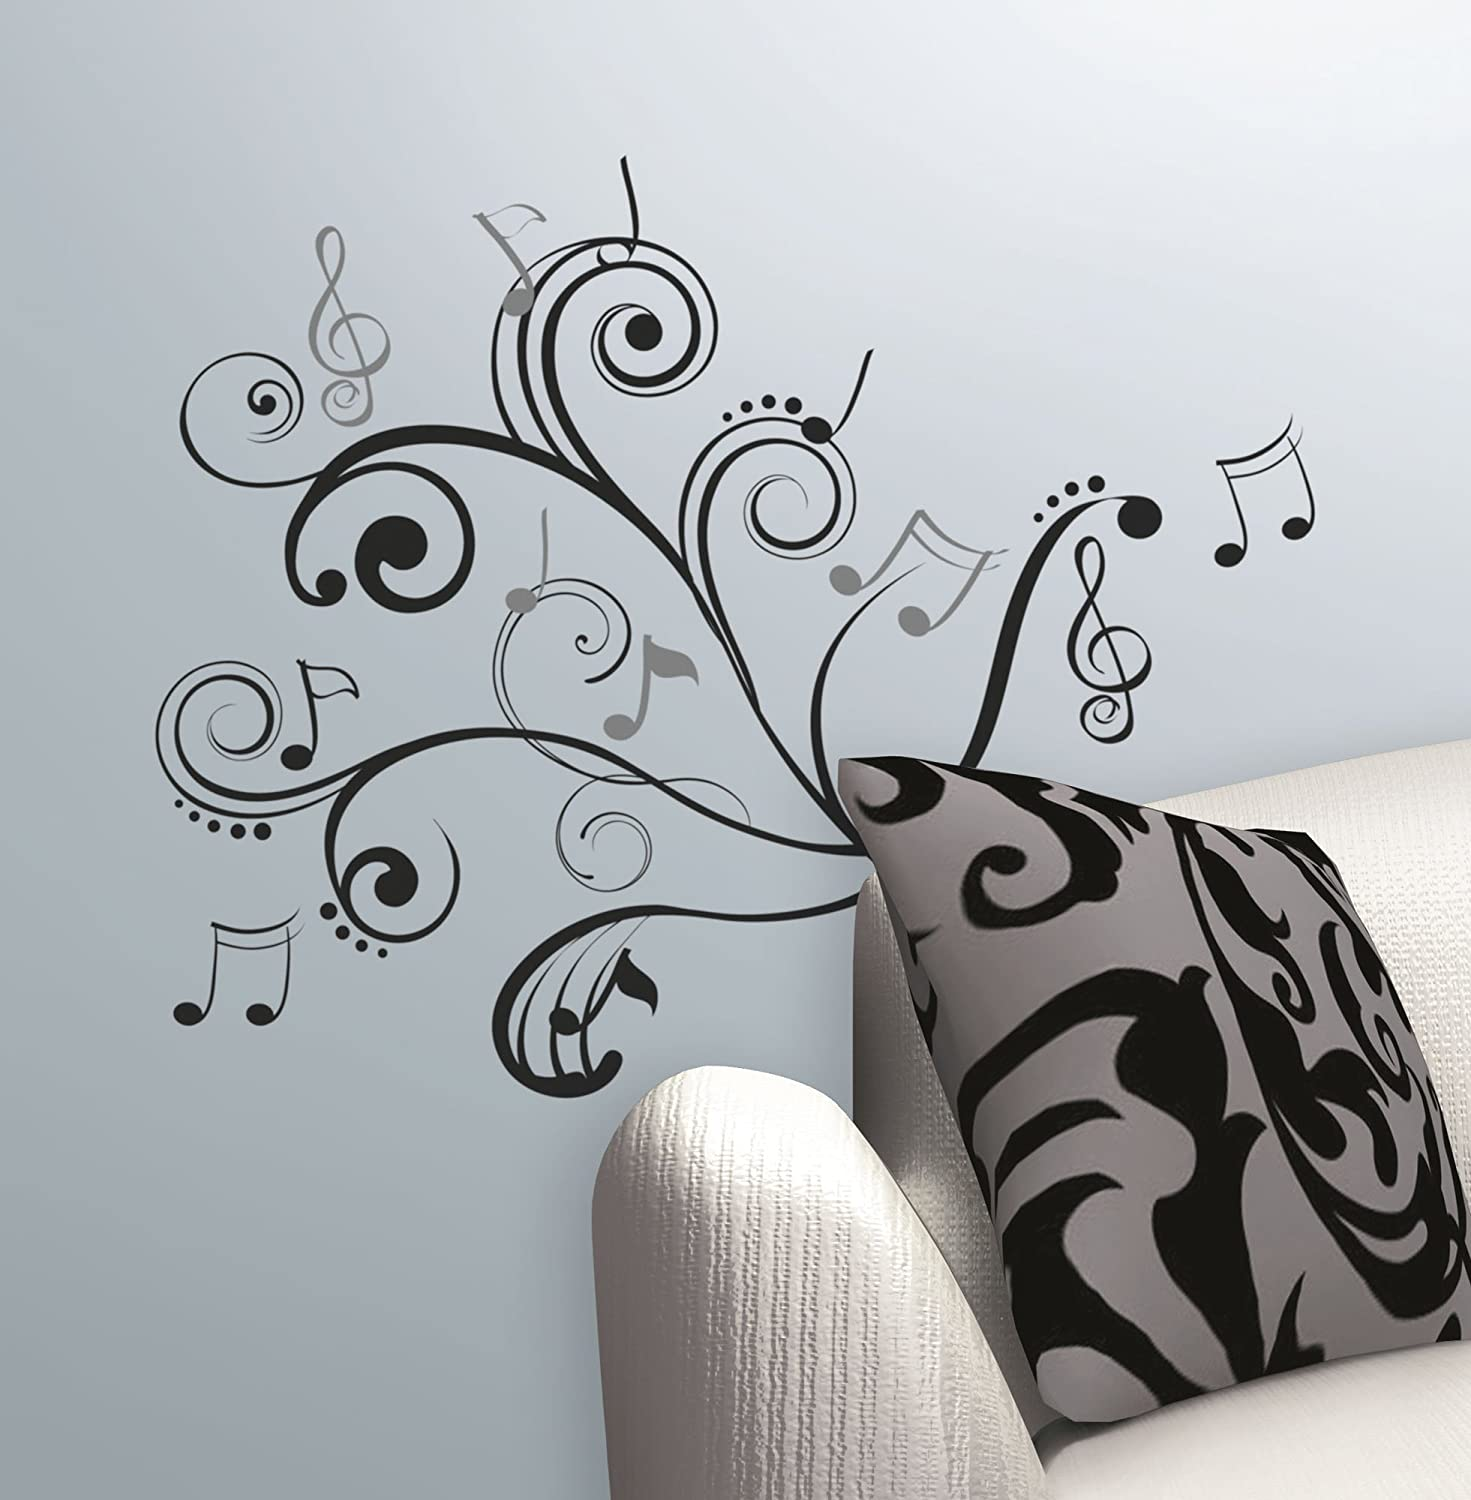 Roommates RMK2083SCS Music Scroll Notes Peel And Stick Wall Decals   Wall  Decor Stickers   Amazon.com